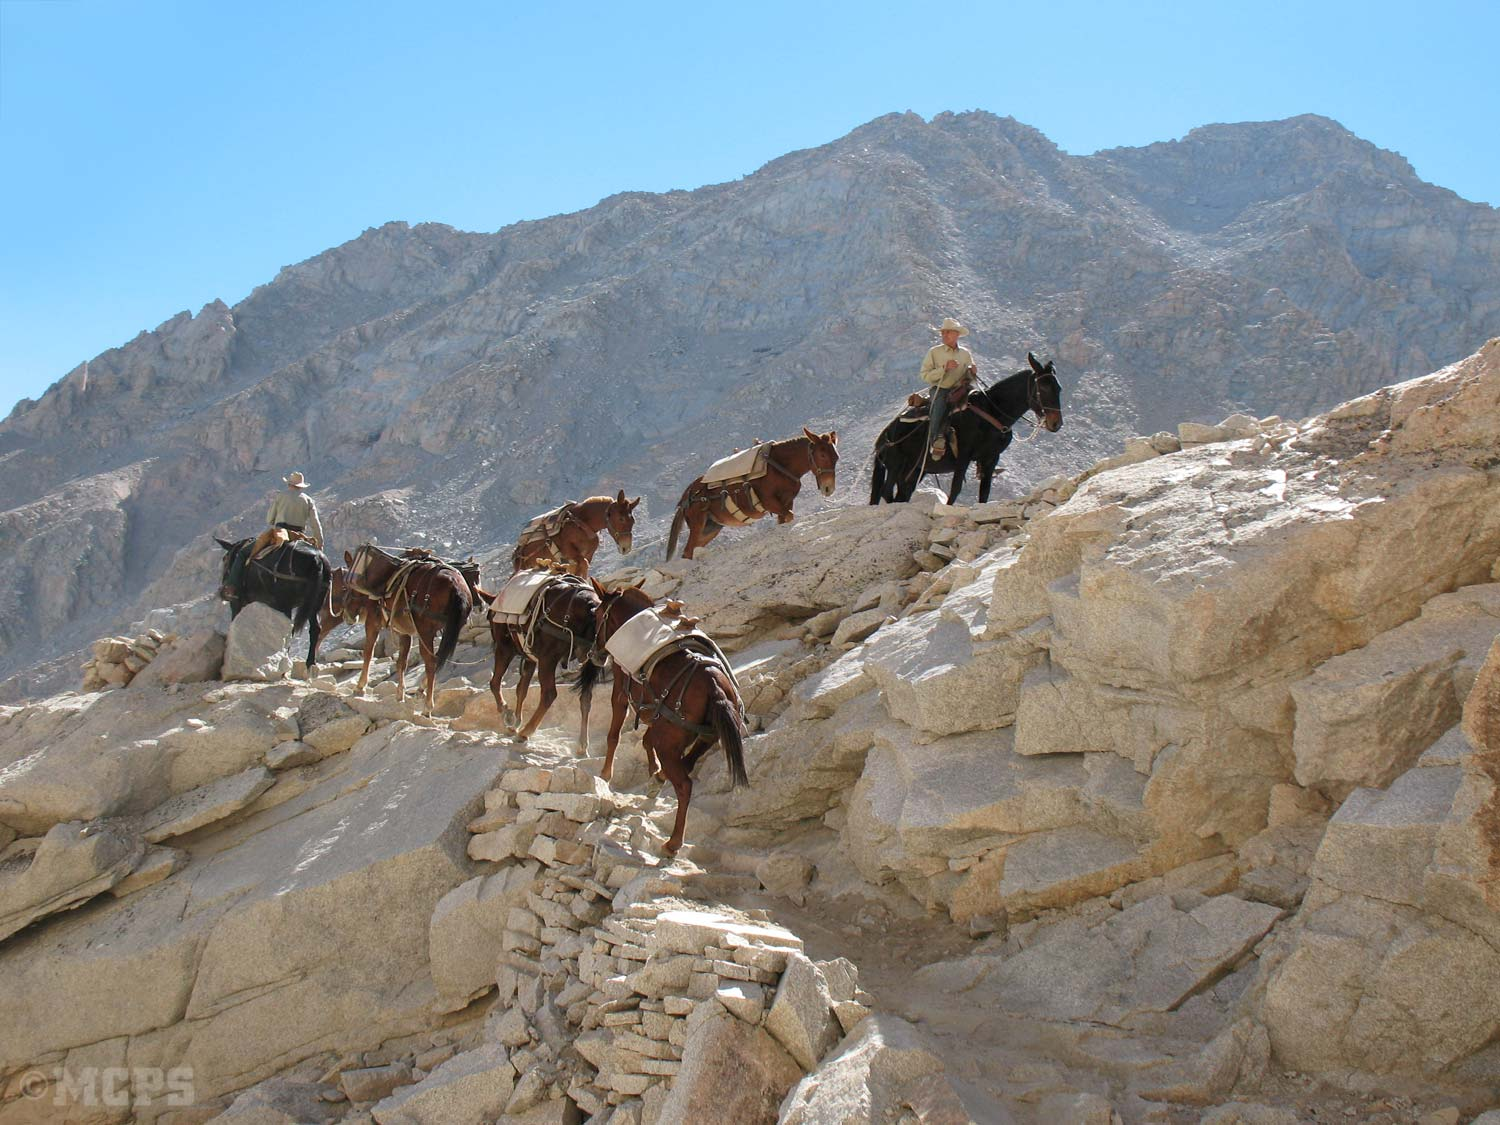 Our mules on the trail